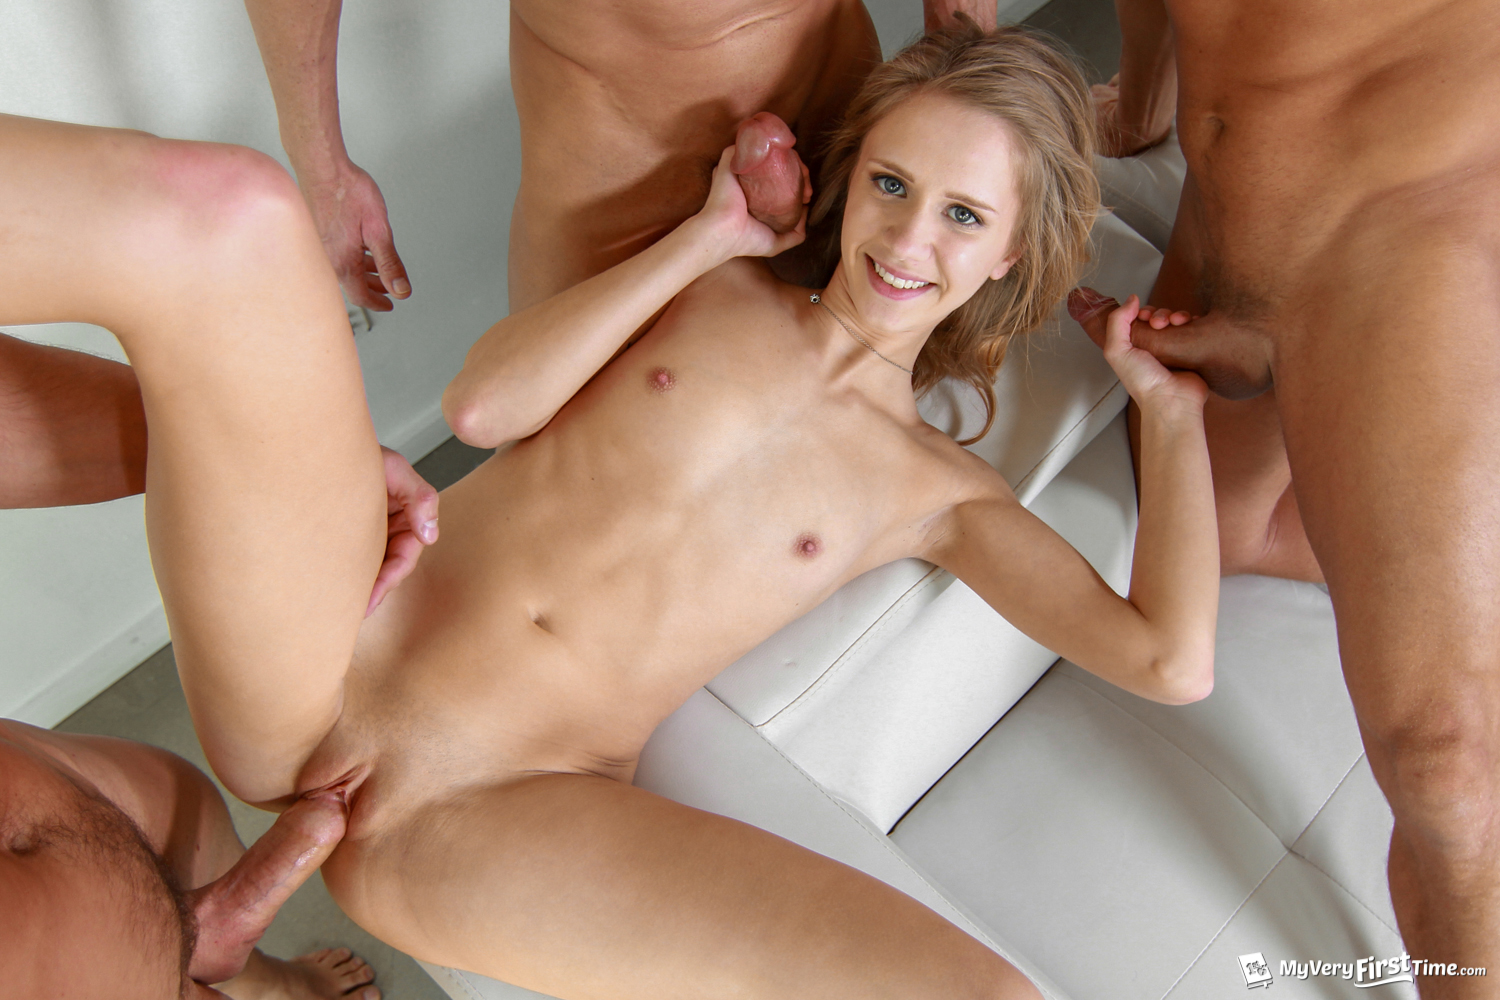 Gangbang Bdsm Blonde Teen